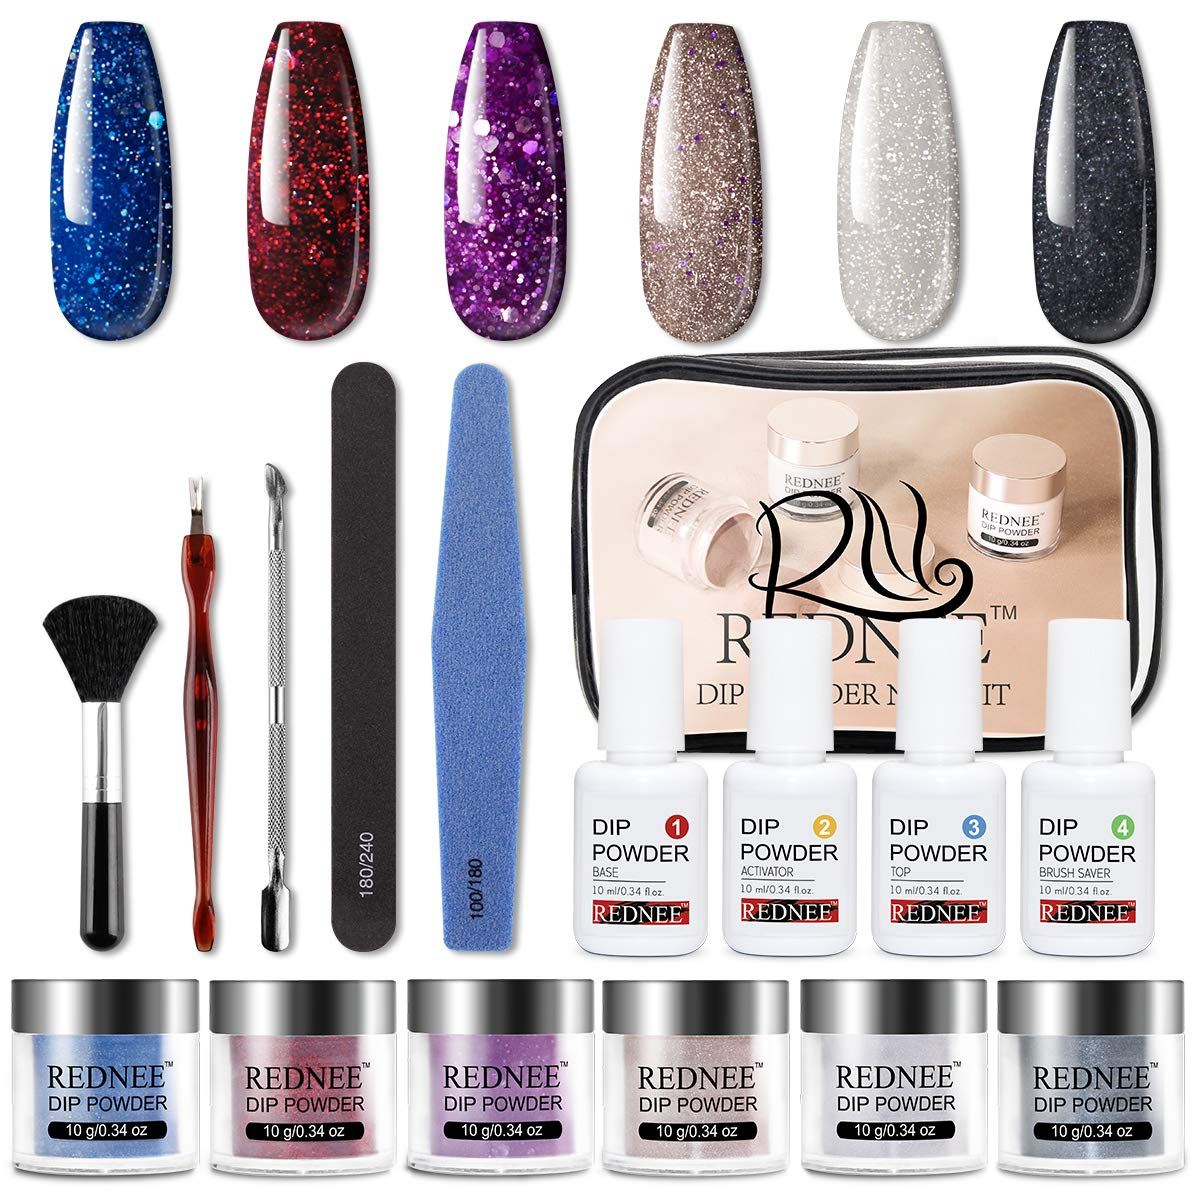 REDNEE Dip Powder Nail Starter Kit 6 Colors with Gel Liquid Essential Tools 16pcs Dipping Powder for Travel - RE03 Party Color